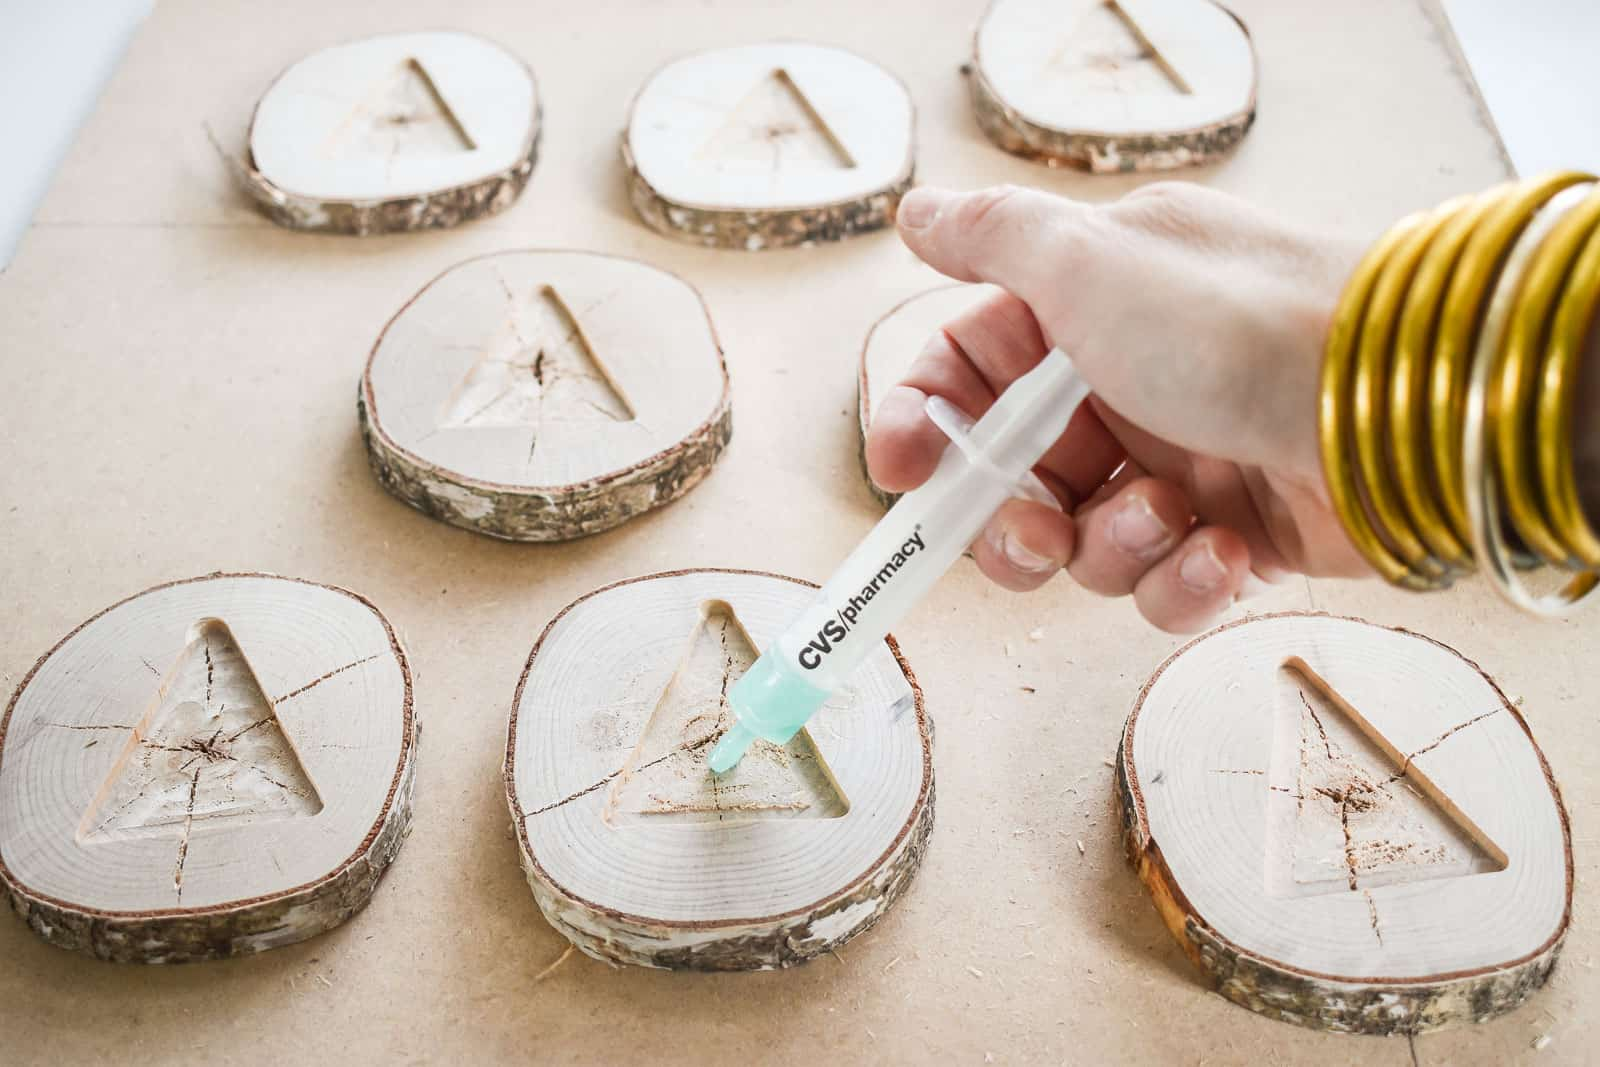 using a syringe to control the resin pour into the wood slices